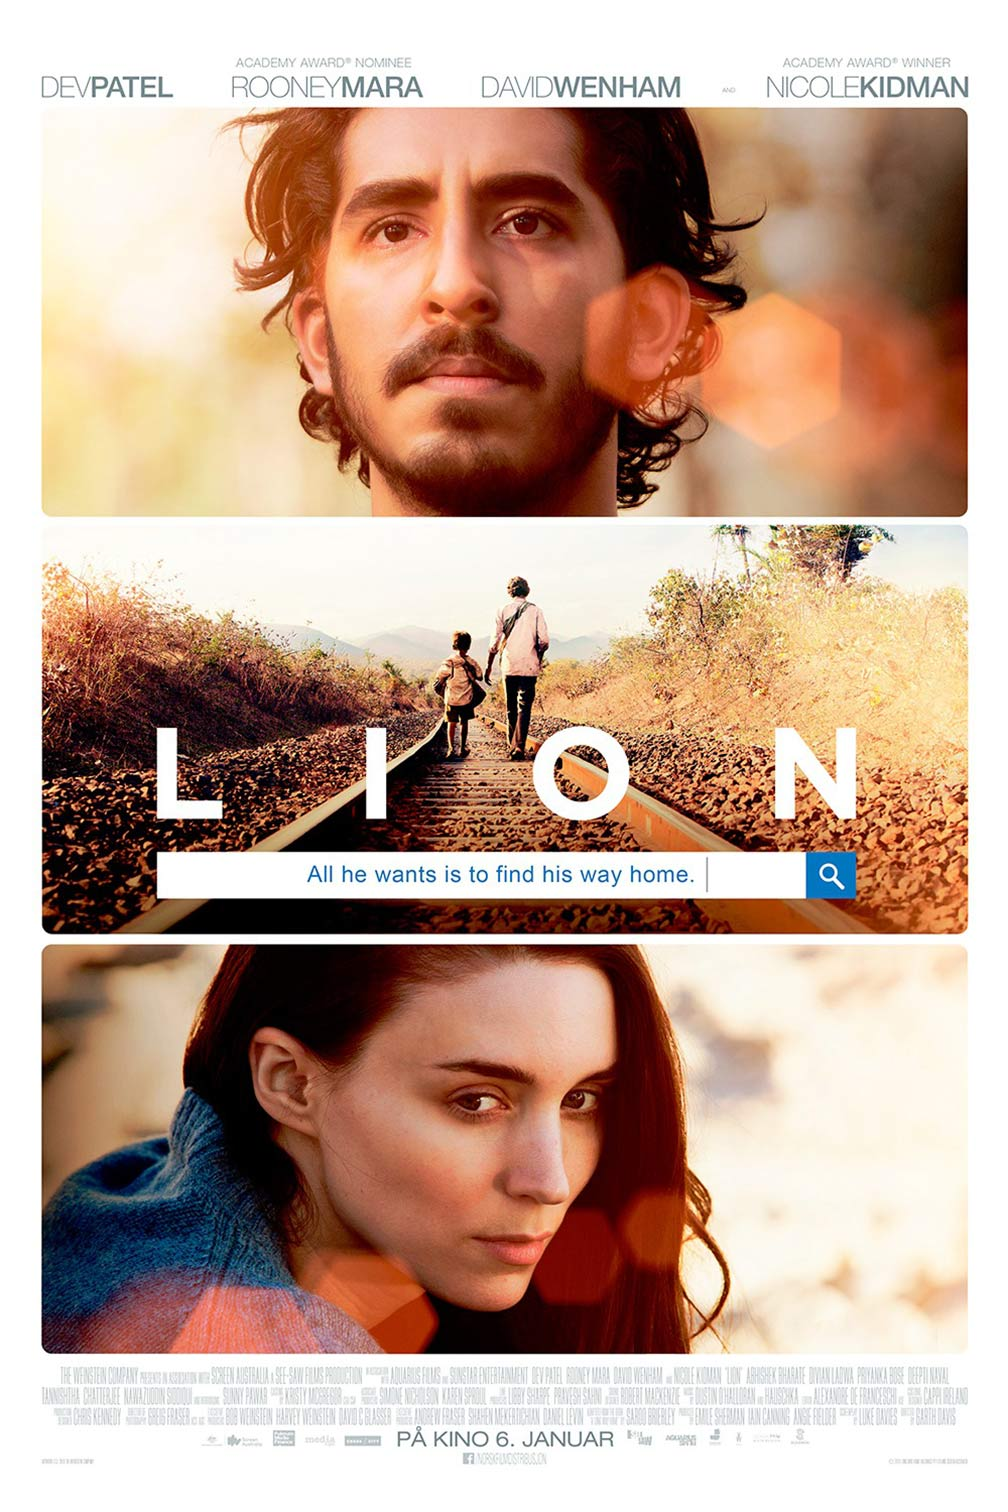 Lion (2016) Poster #9 - Trailer Addict David Wenham